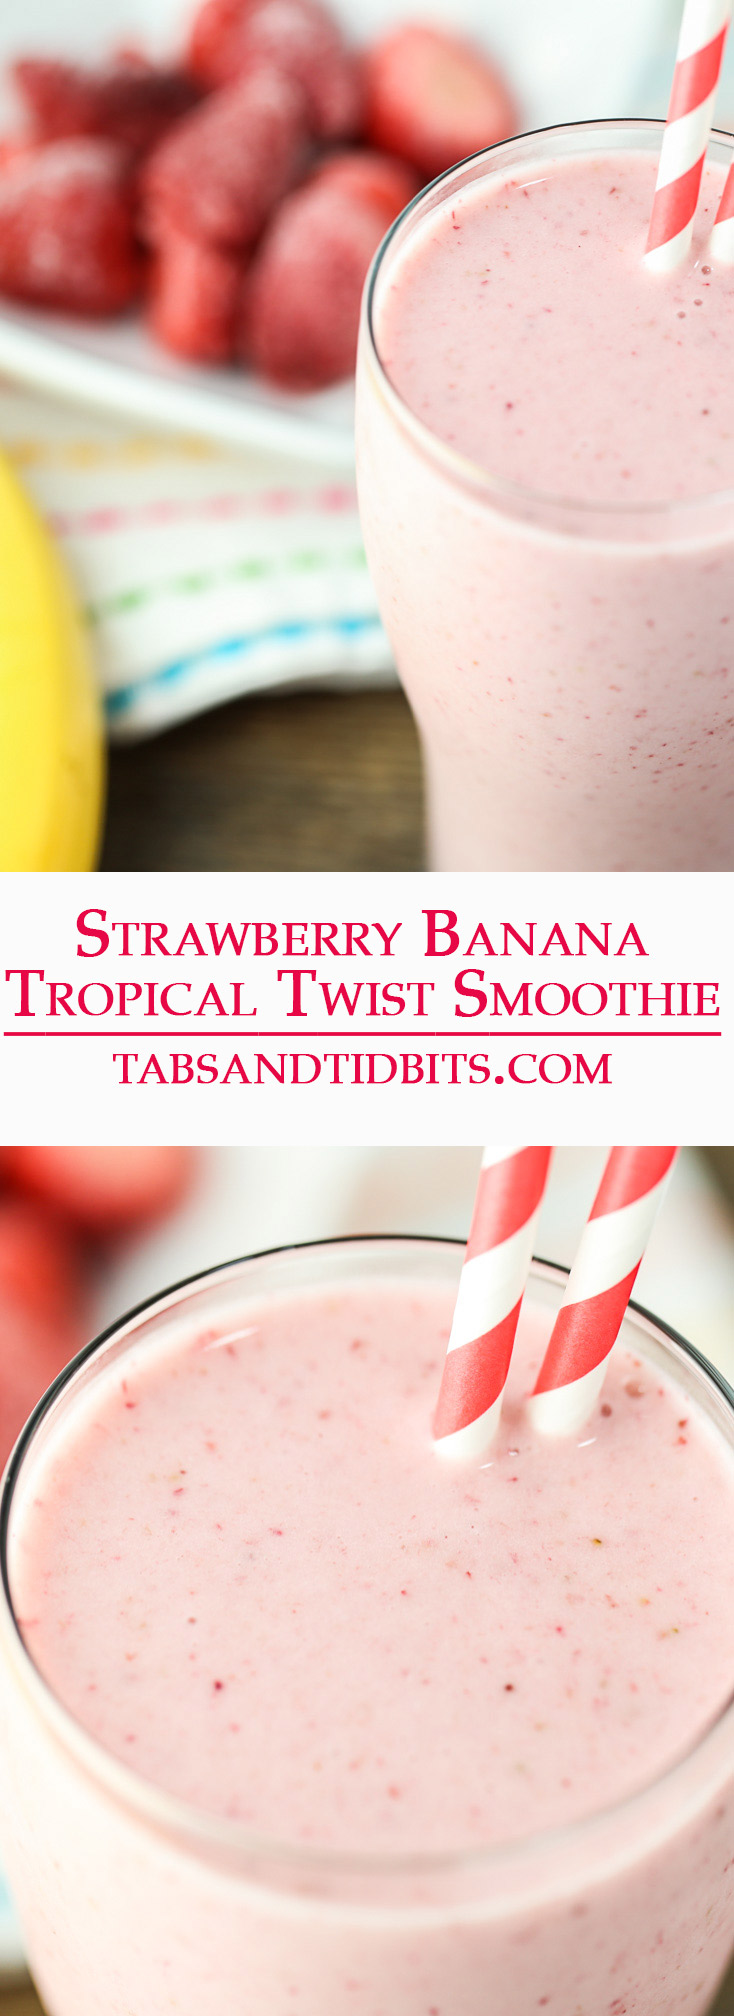 This smoothie is the classic strawberry and banana smoothie with the addition of creamy coconut milk to give deliver a delicious tropical twist!